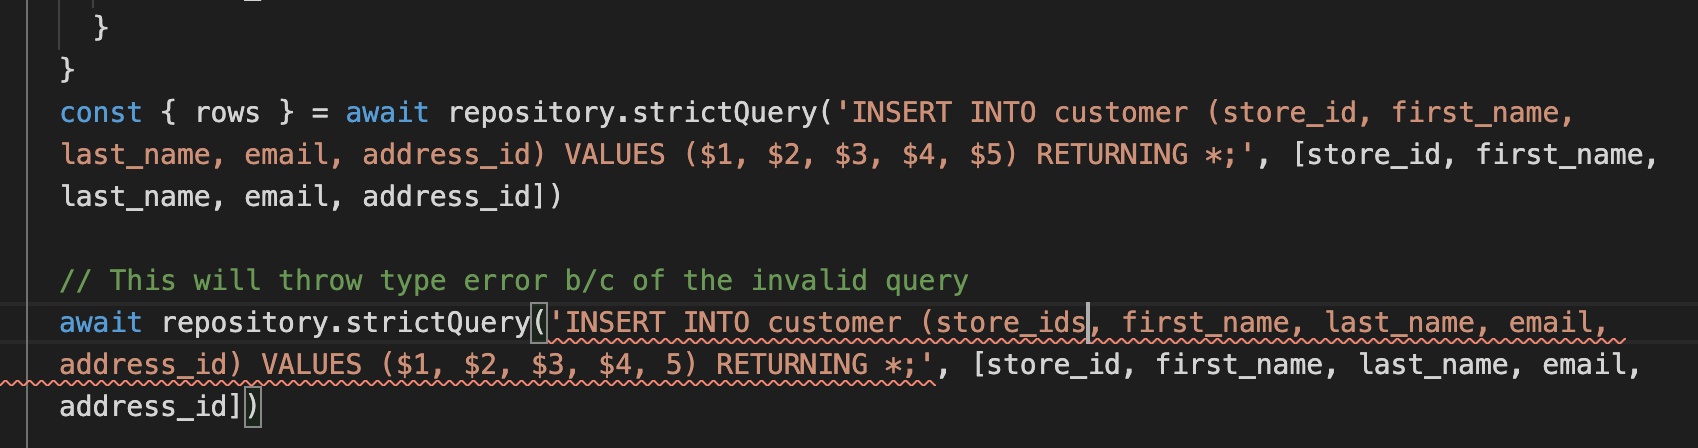 invalid insert query